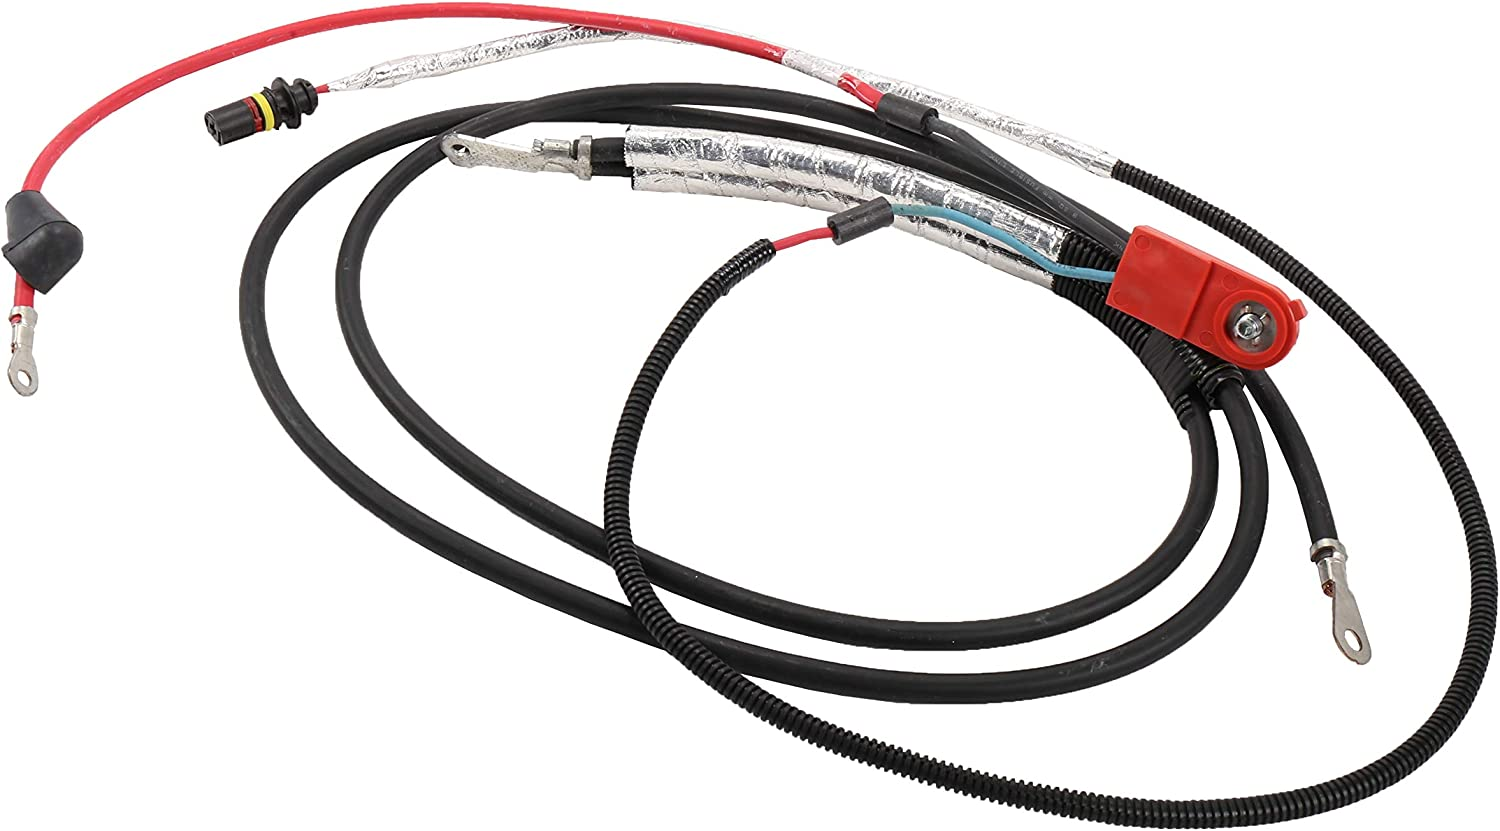 GM Luxury Genuine Parts 88987159 Battery Cable online shopping Positive